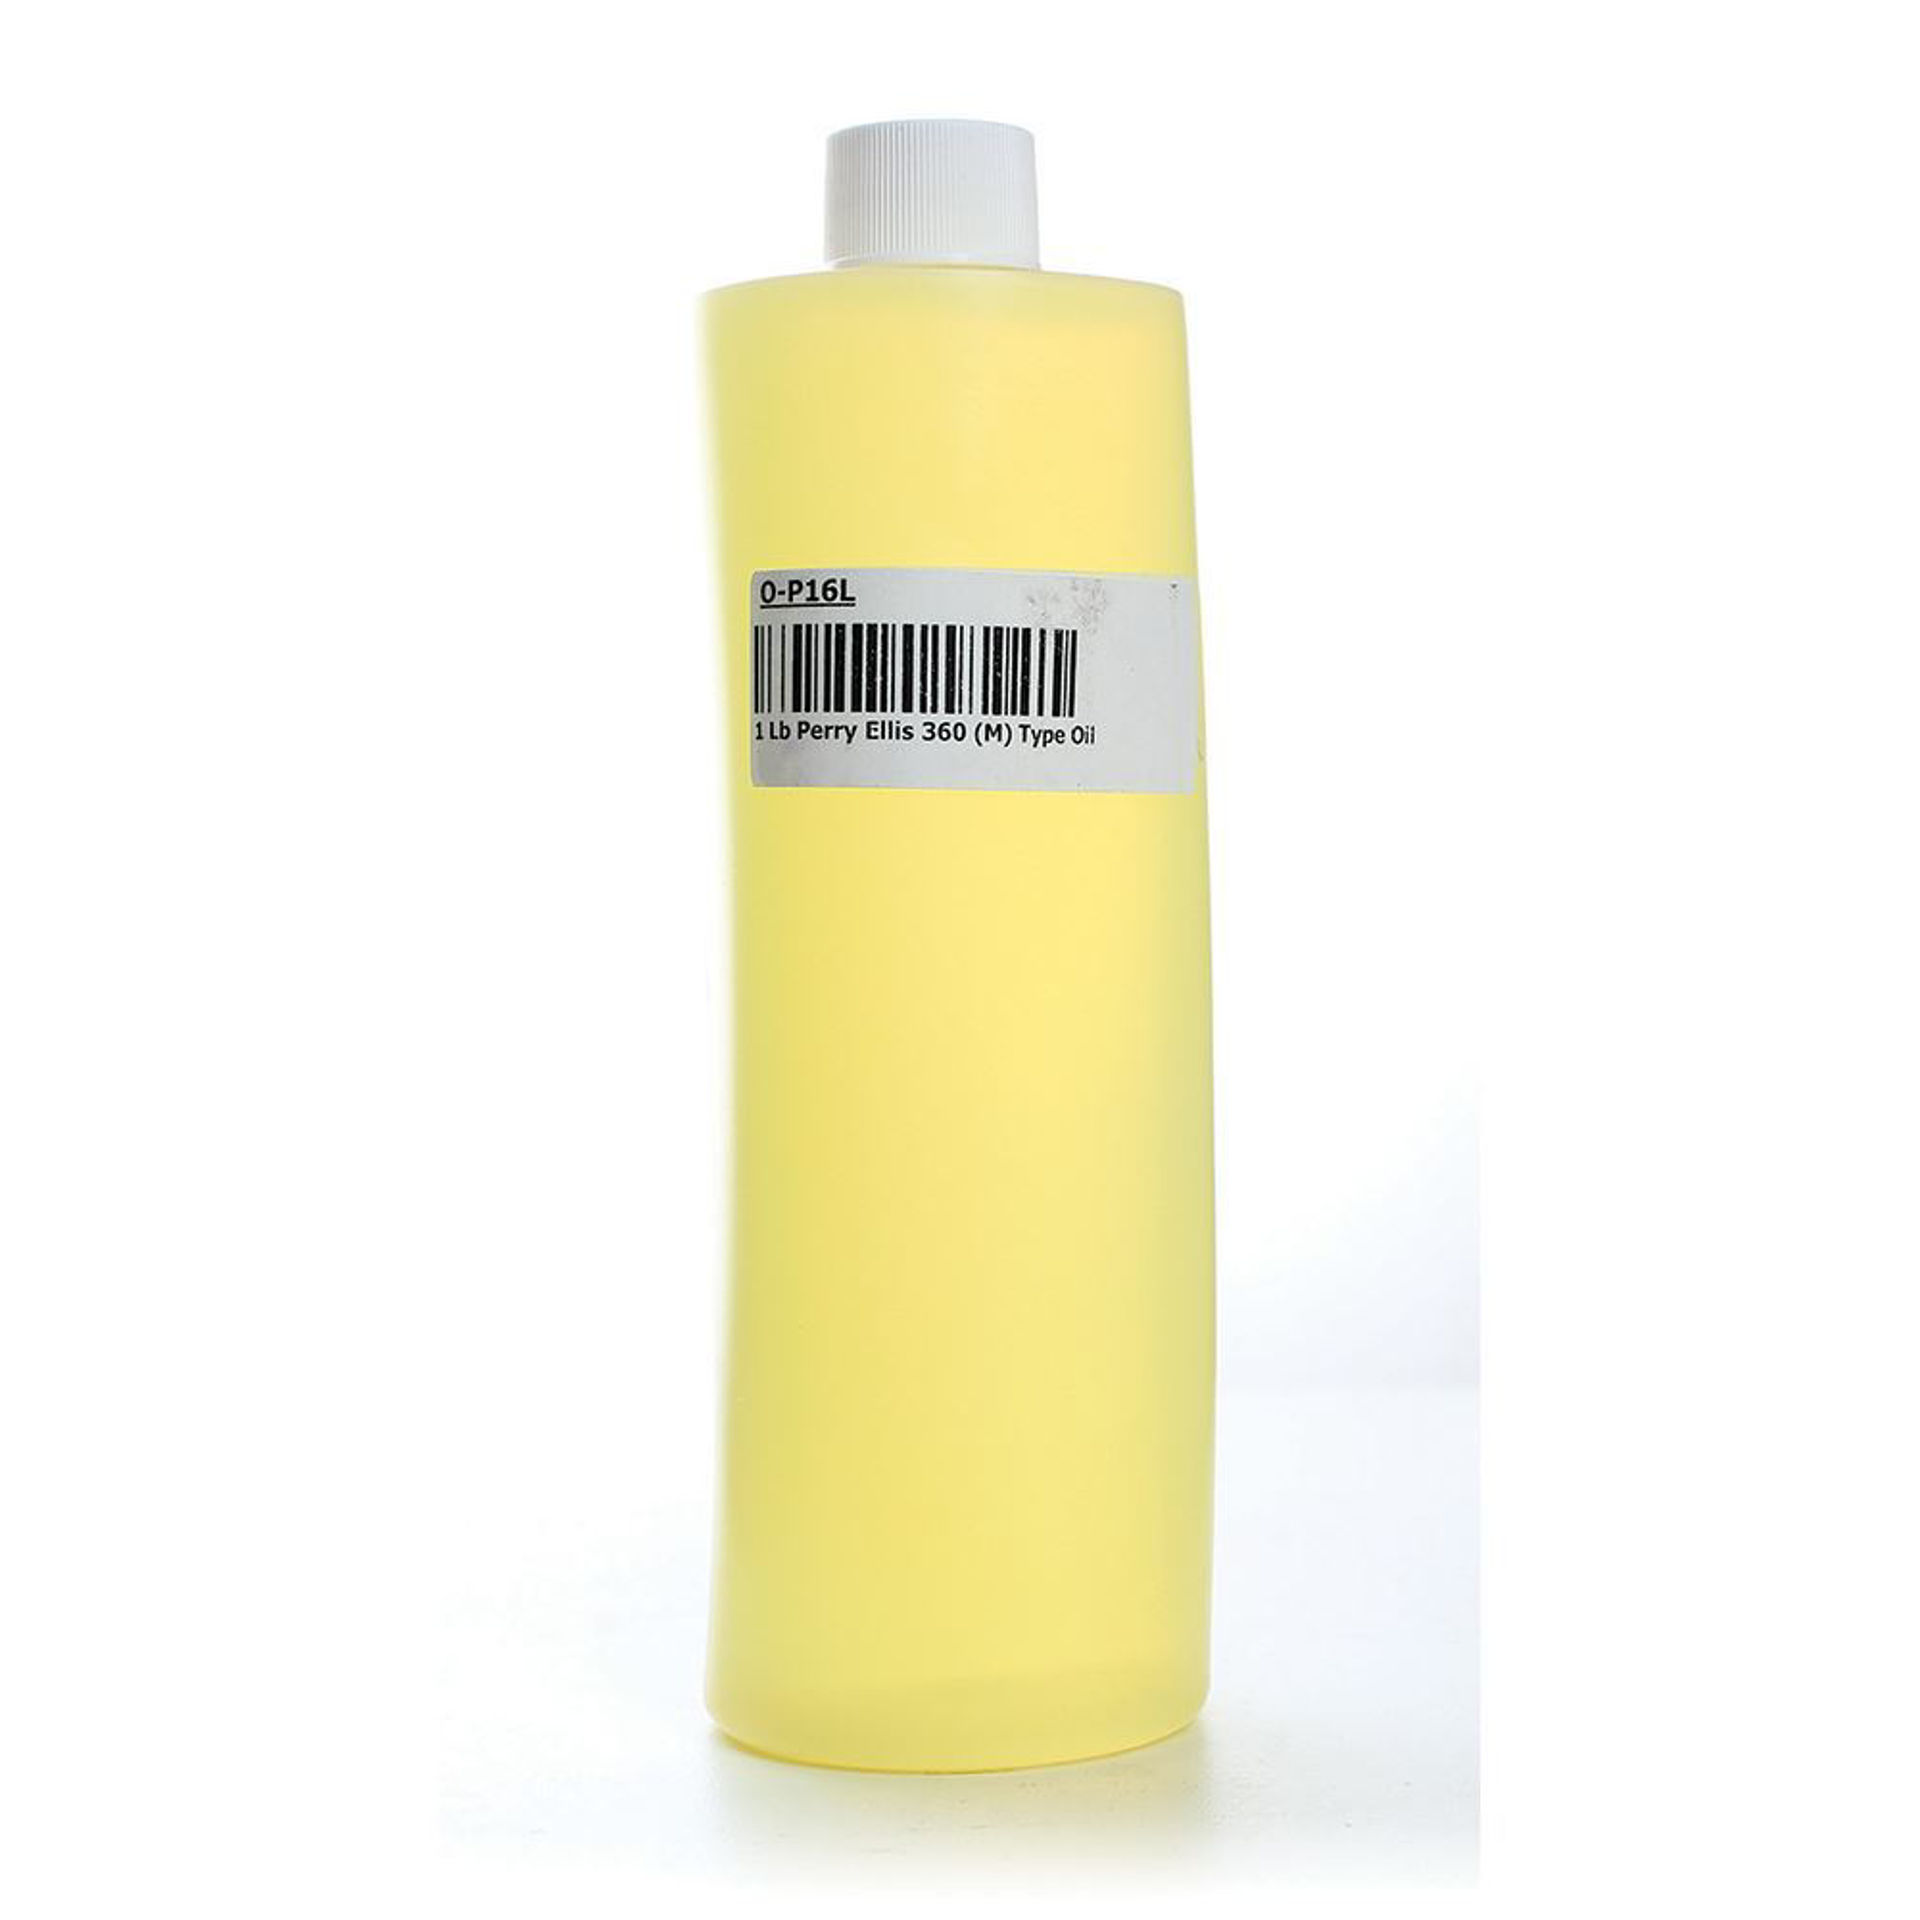 Picture of 1 Lb Perry Ellis 360 (M) Type Oil